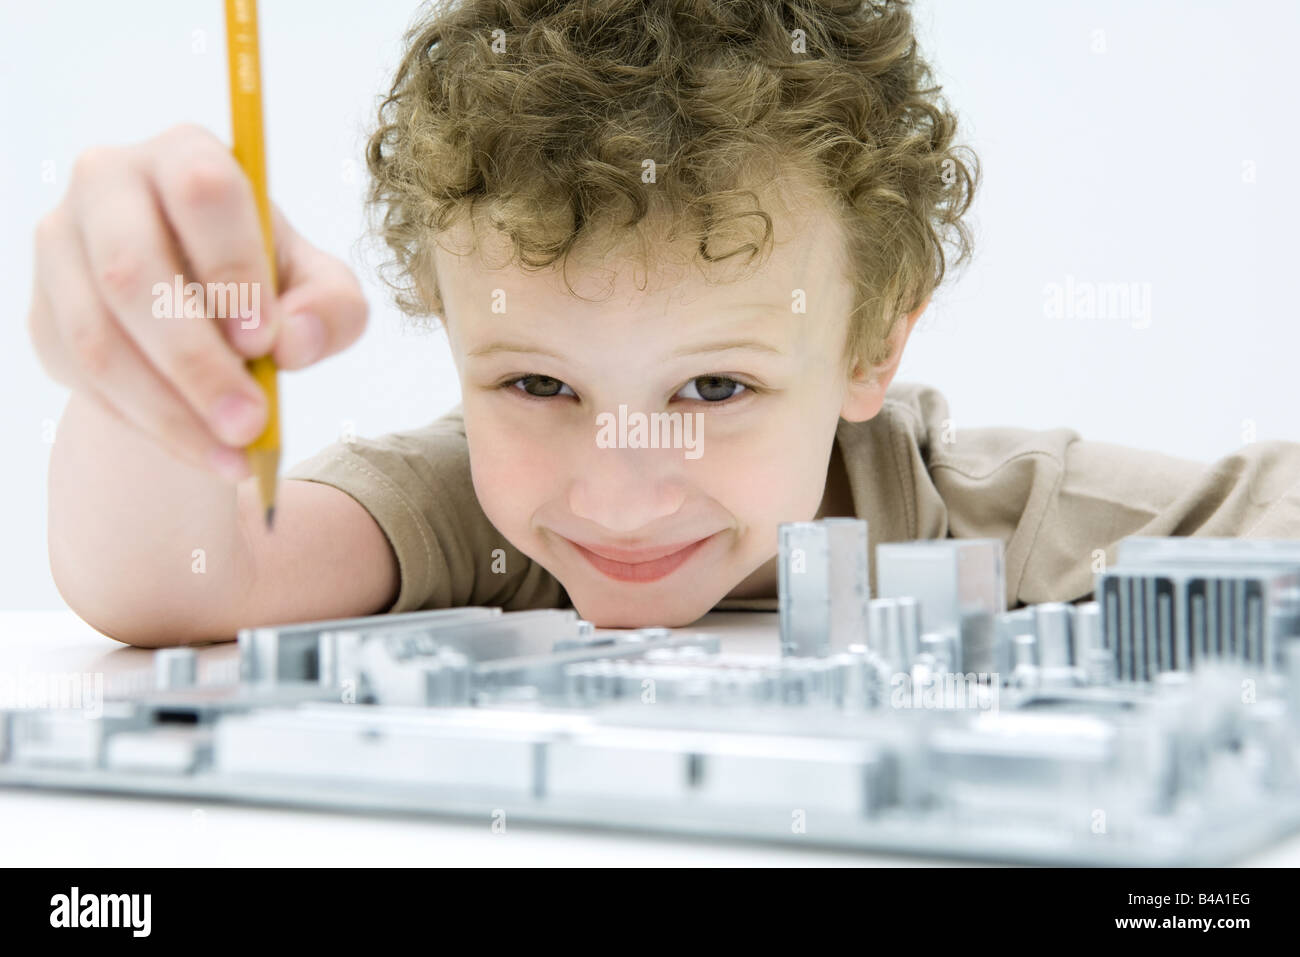 Little boy holding pencil over computer motherboard, smiling at camera - Stock Image